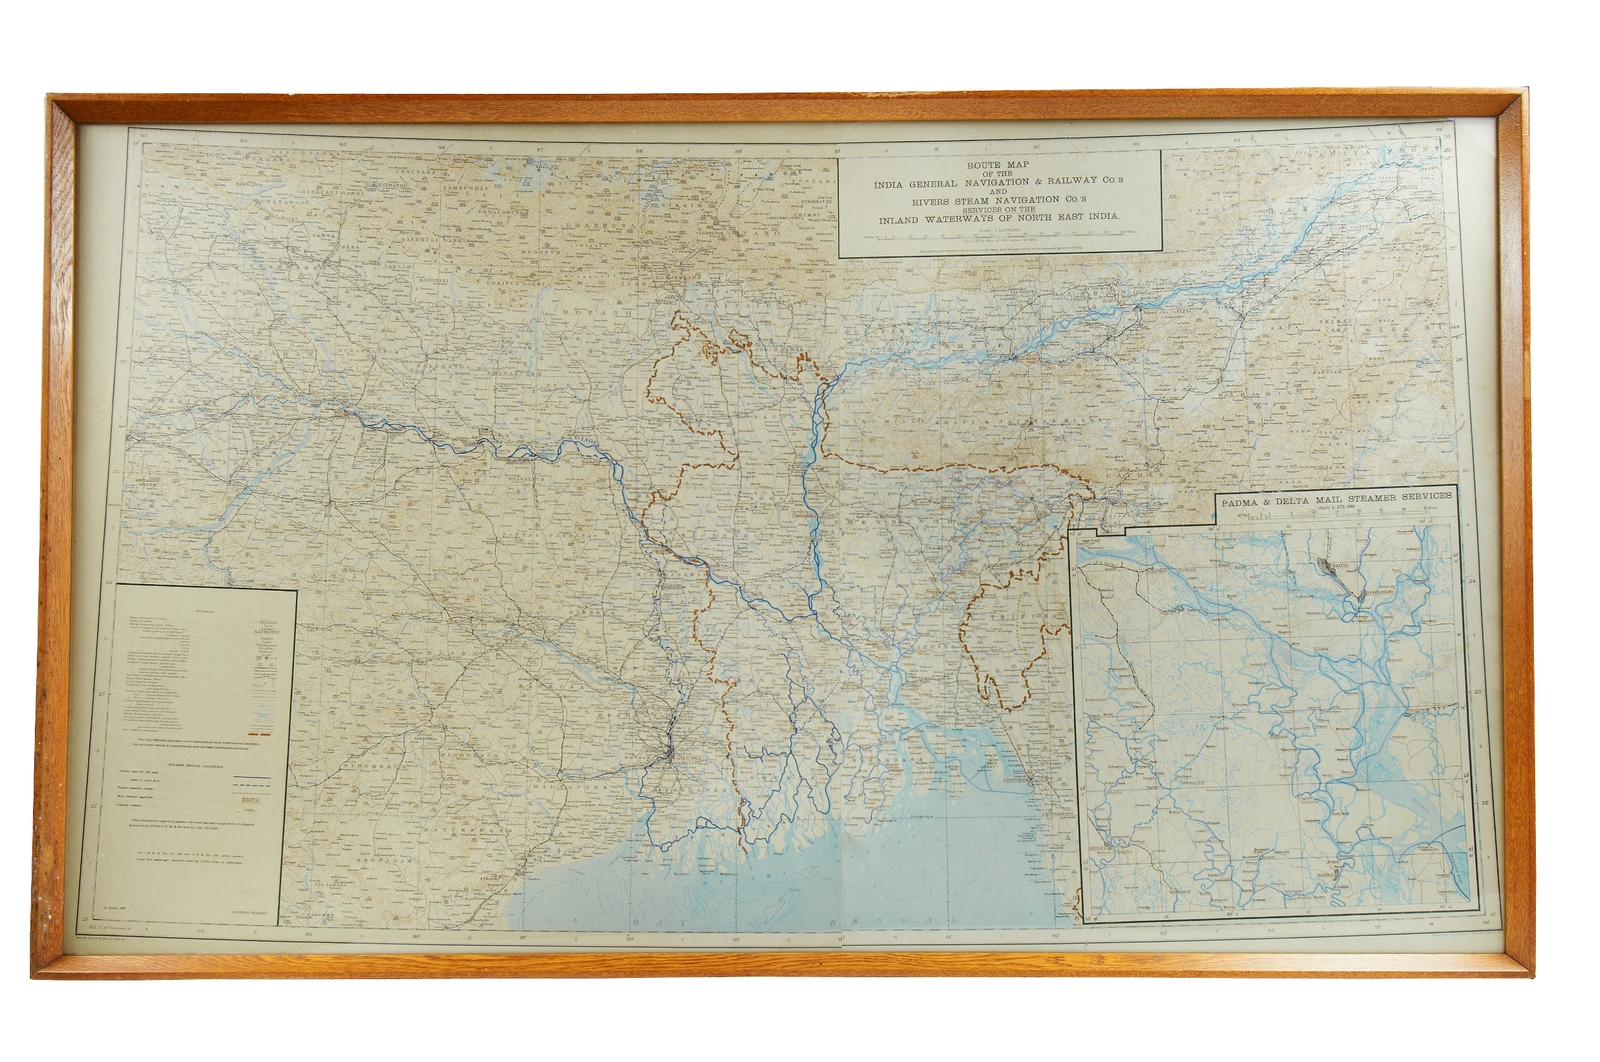 Map, Inland Waterways of North East India, 1947 in Jute